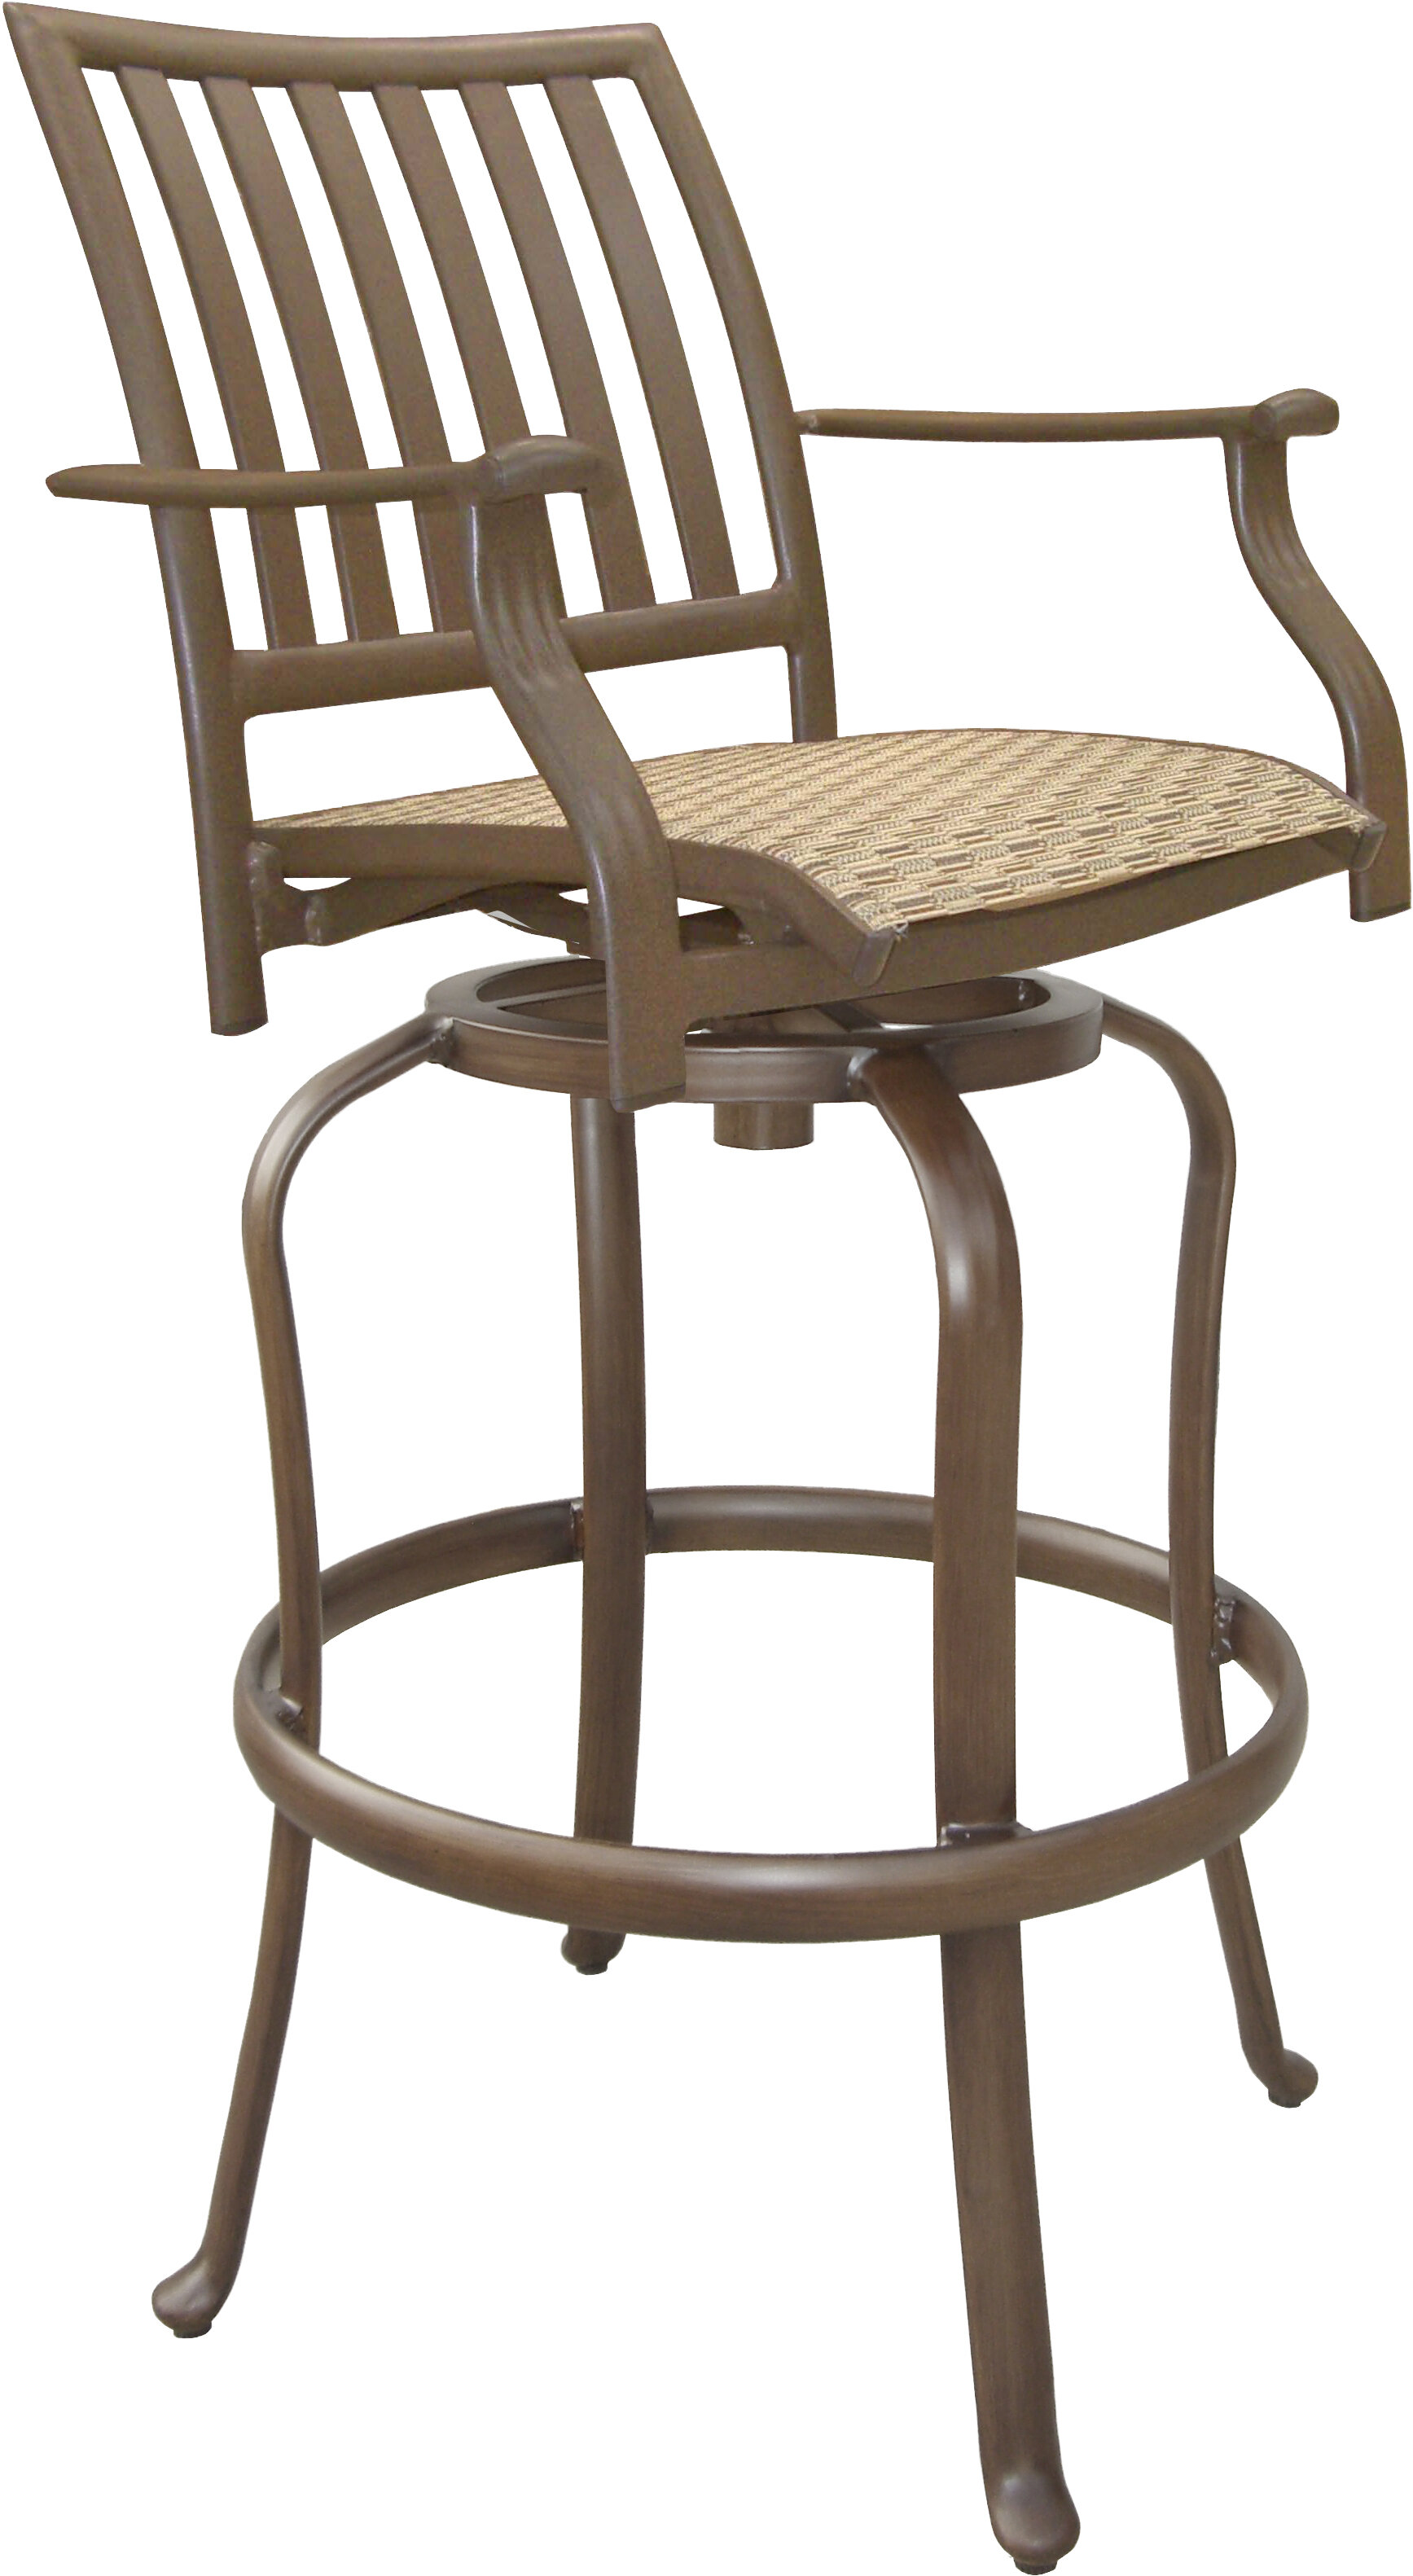 designs furniture bar full patio of photos dining stool barture size design info kcareesma awful height stools outdoor